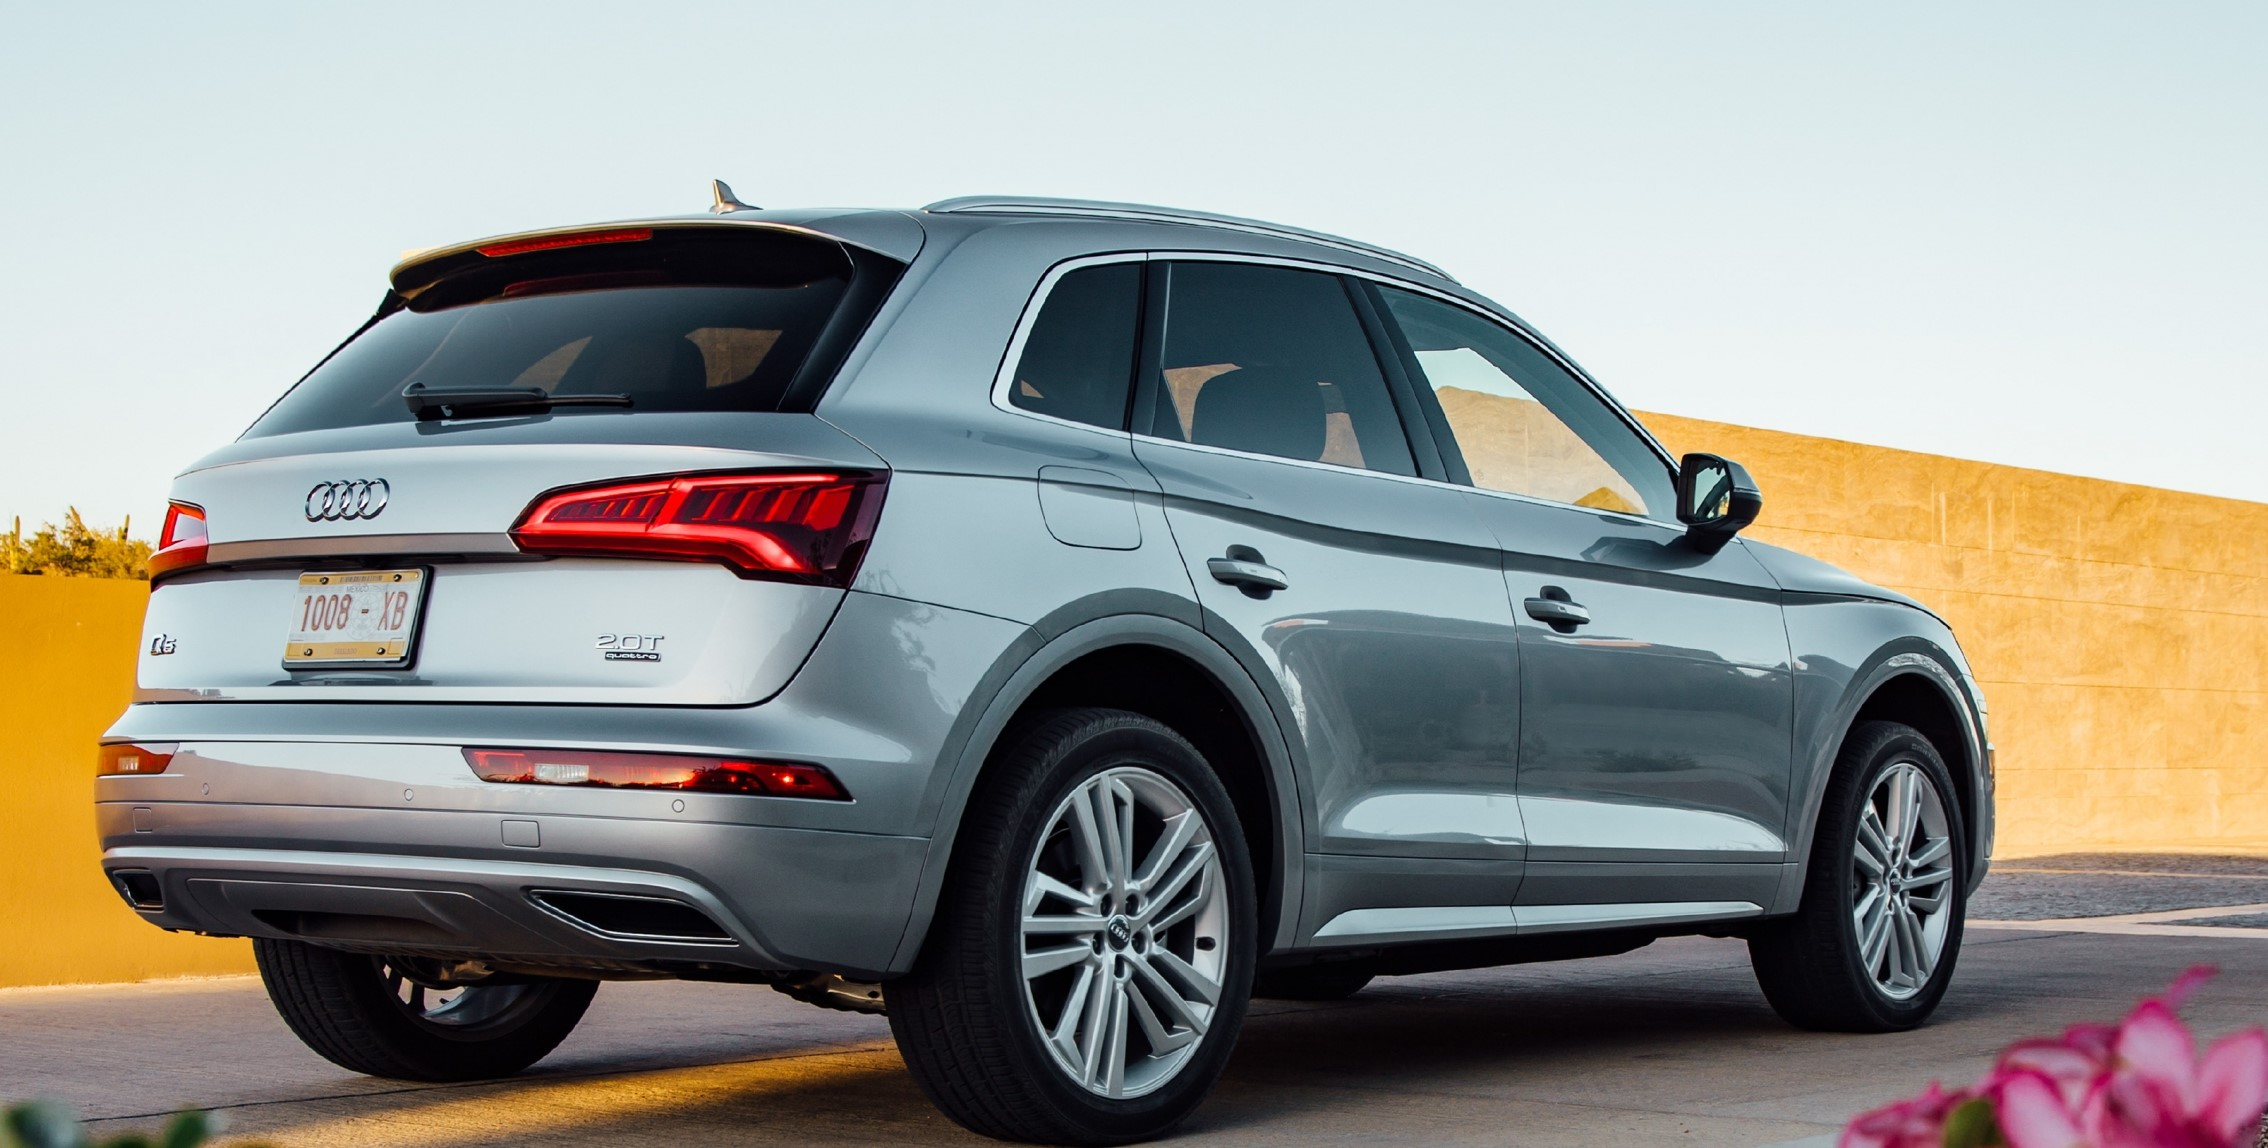 ALL-NEW 2018 AUDI Q5 MAKES US DEBUT - myAutoWorld.com